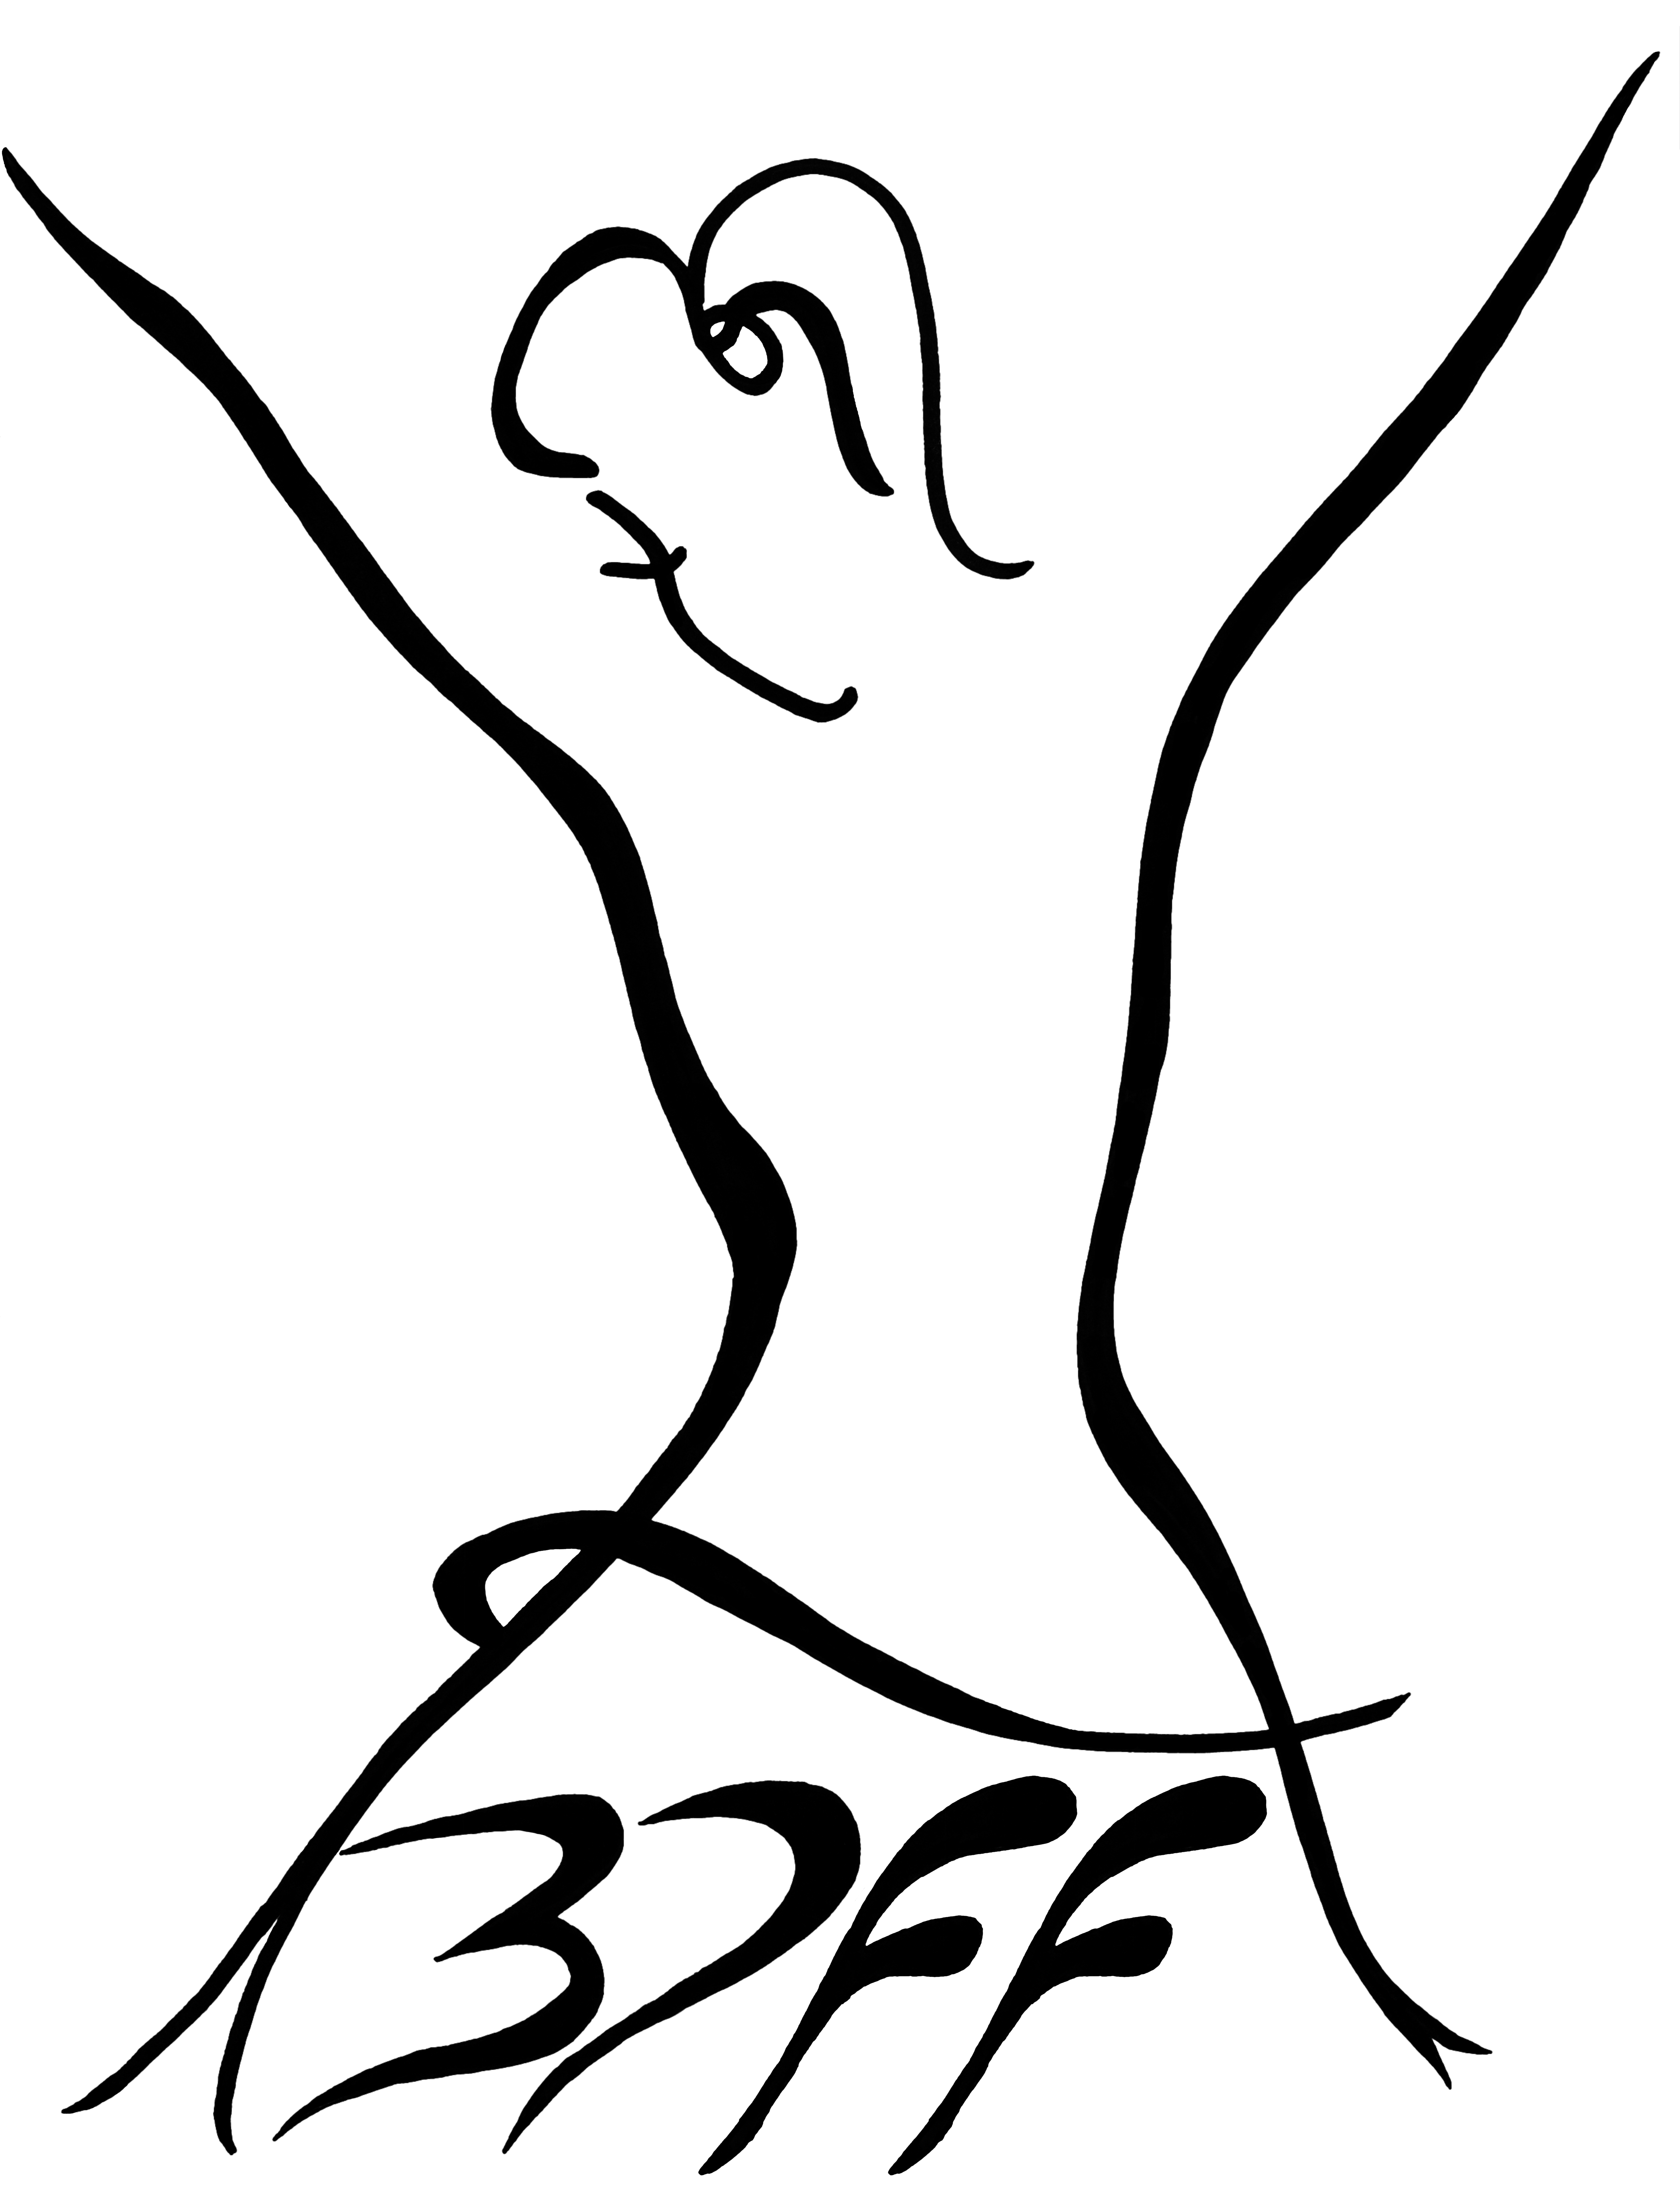 And - just showing off: my new Logo for Halyma's Belly Dancing For Fun